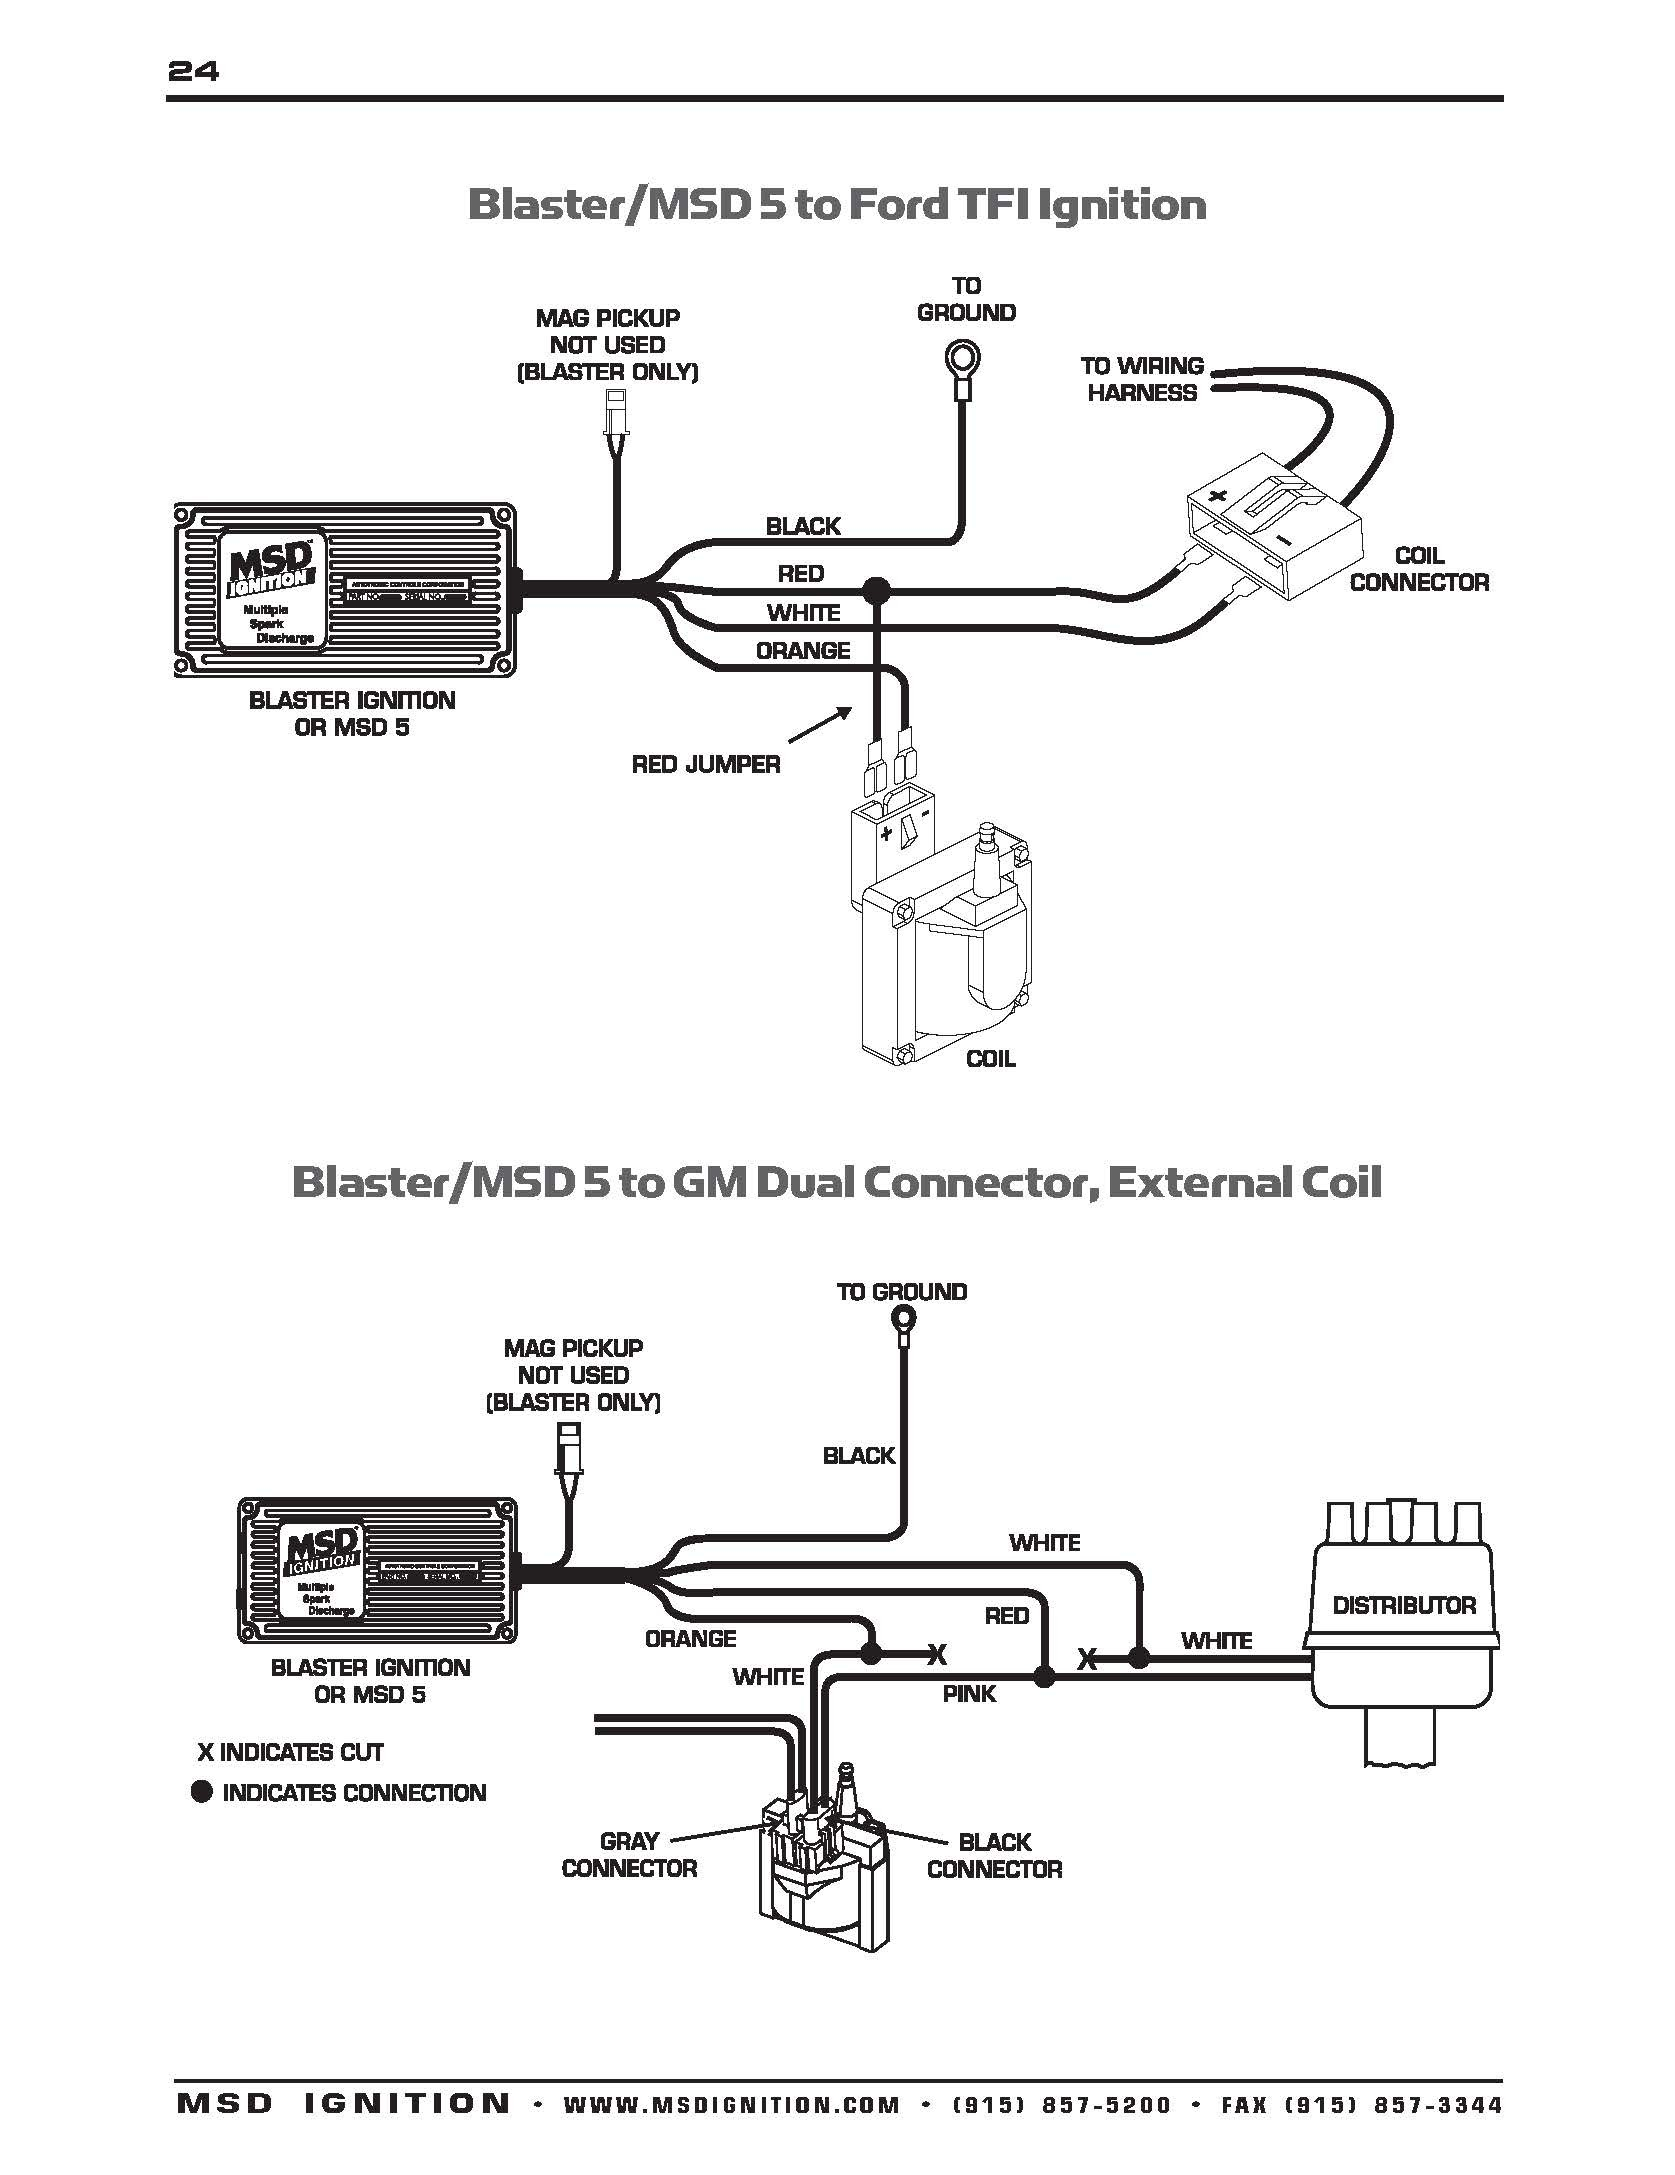 Ignition Coil Distributor Wiring Diagram Msd Ignition Wiring Diagrams Throughout 6a Diagram to Distributor Of Ignition Coil Distributor Wiring Diagram